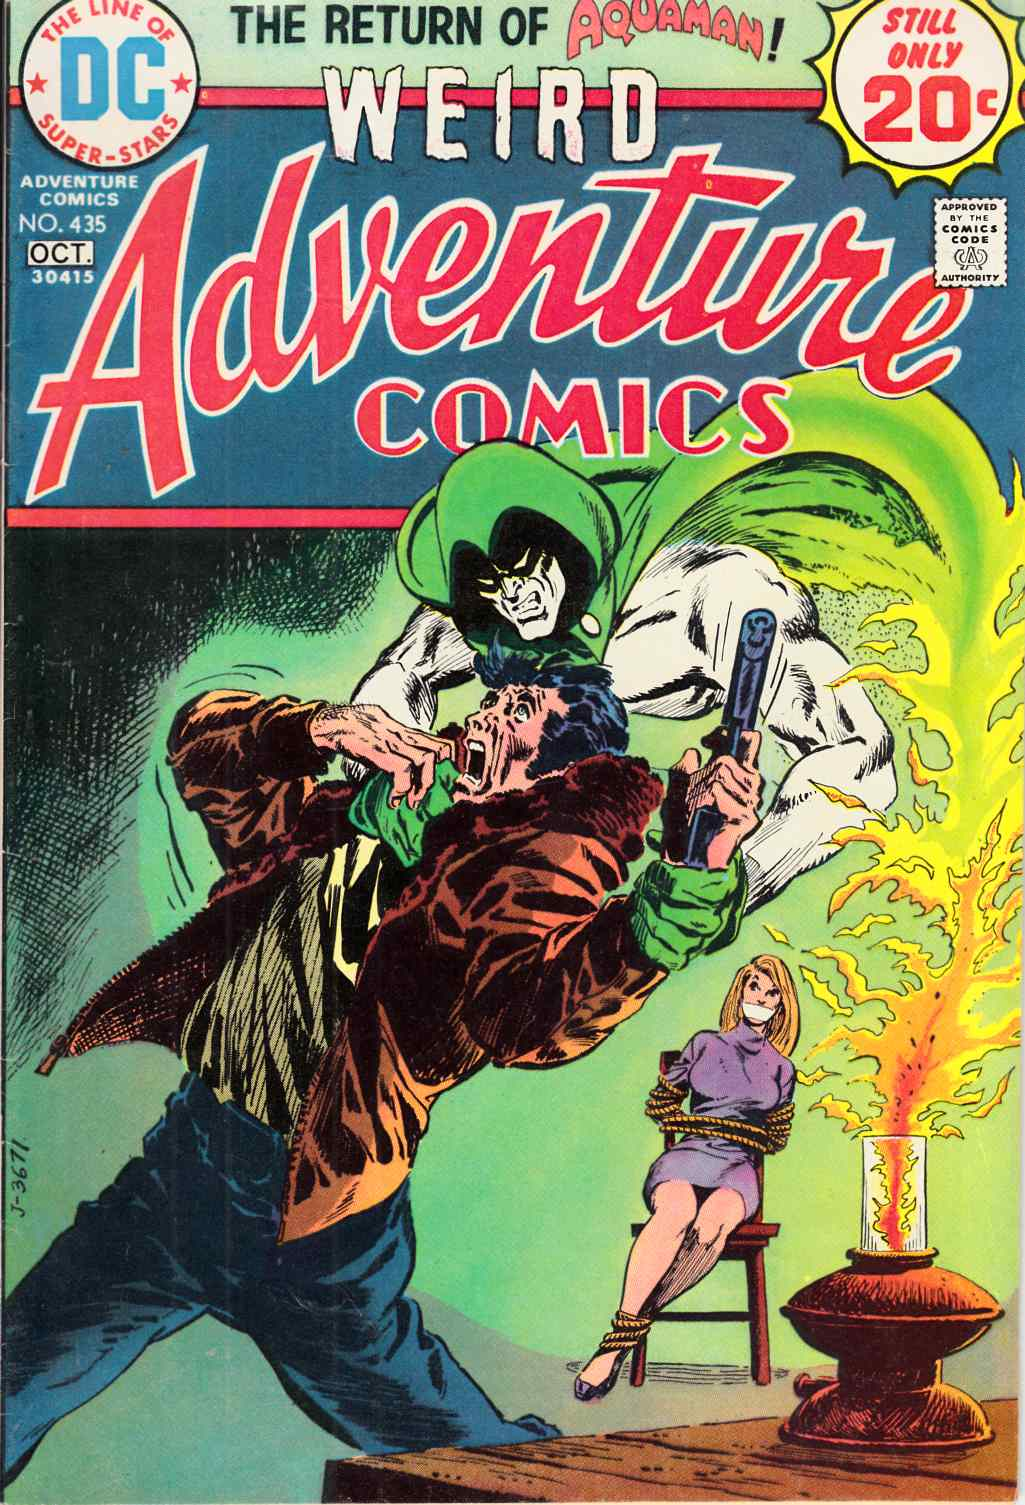 Adventure Comics #435 Fine (6.0) [DC Comic] THUMBNAIL